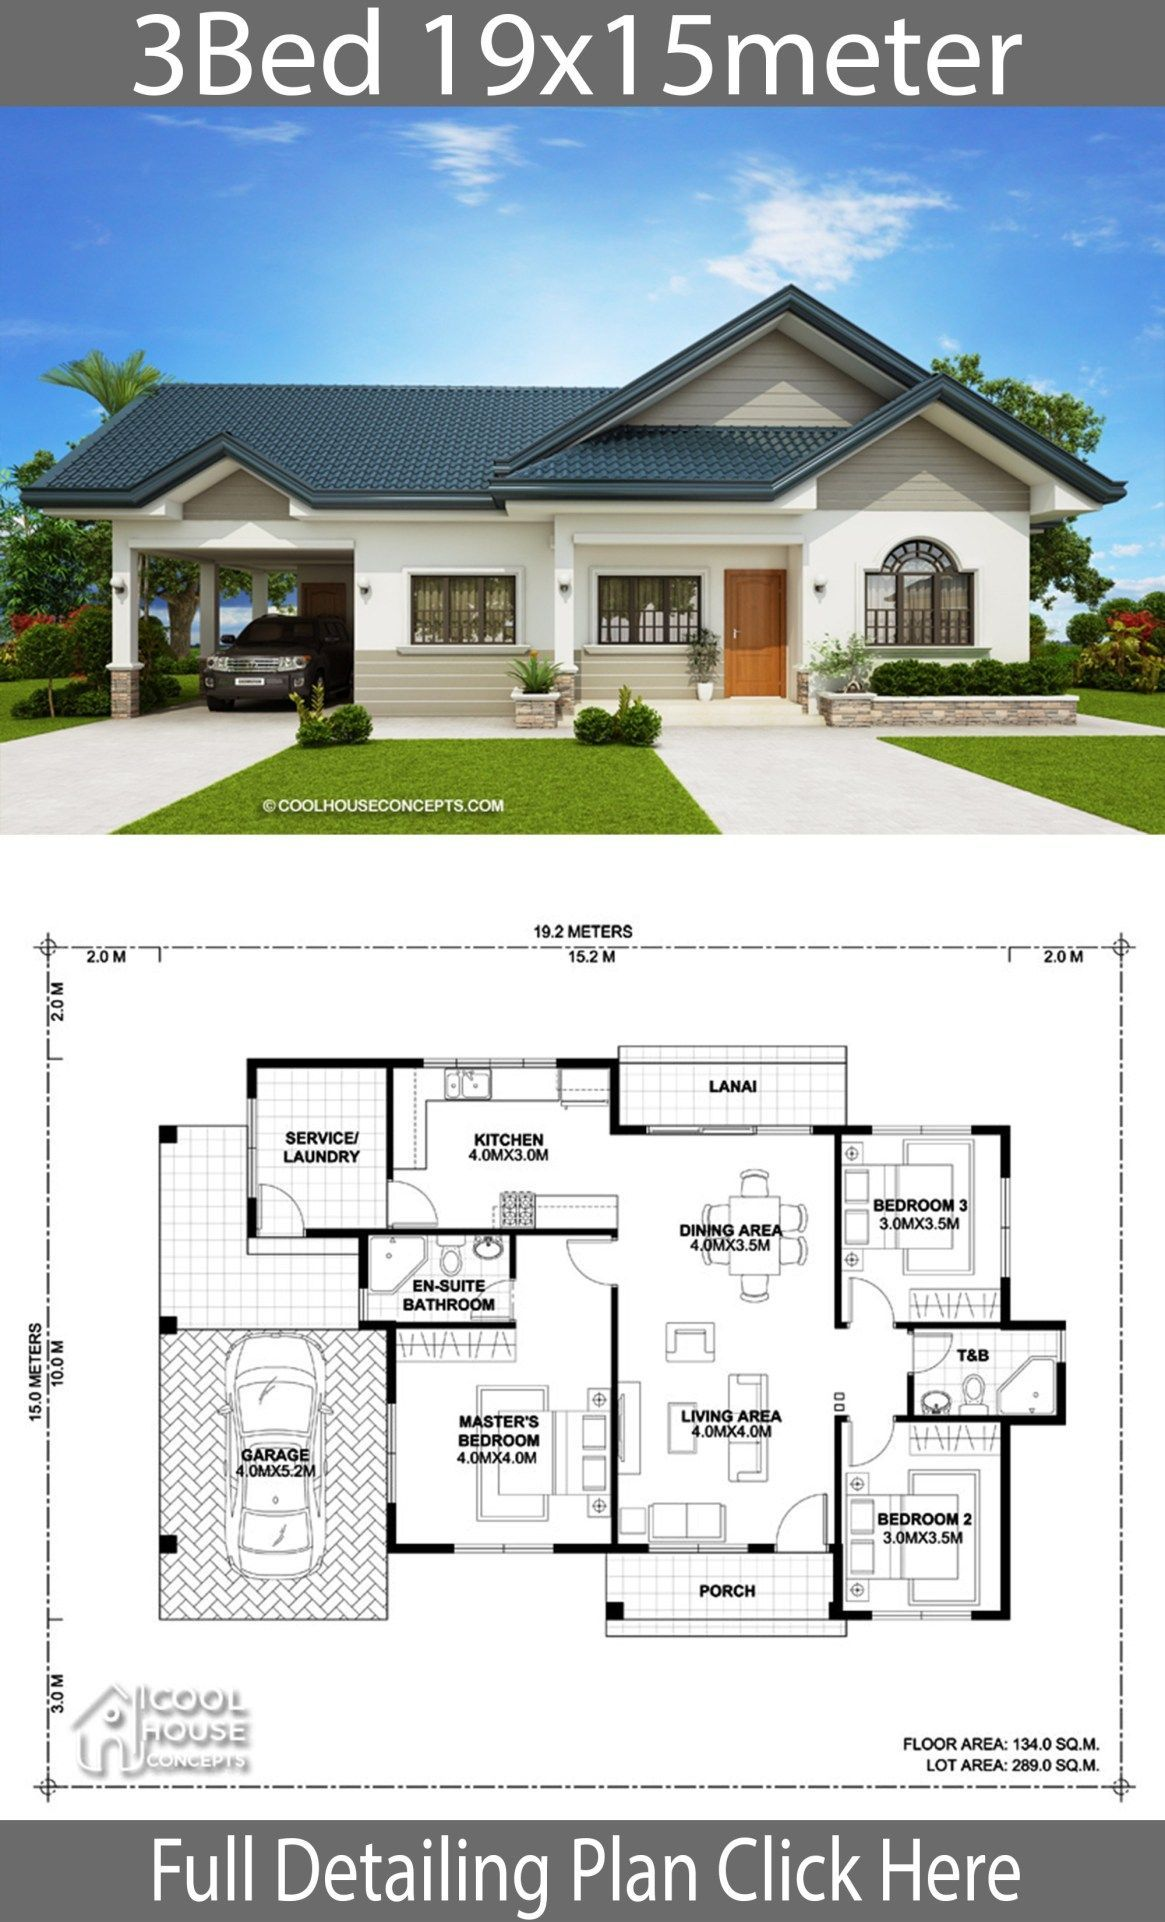 Home Design Plan 19x15m With 3 Bedrooms Home Ideas Beautiful House Plans House Plan Gallery Affordable House Plans